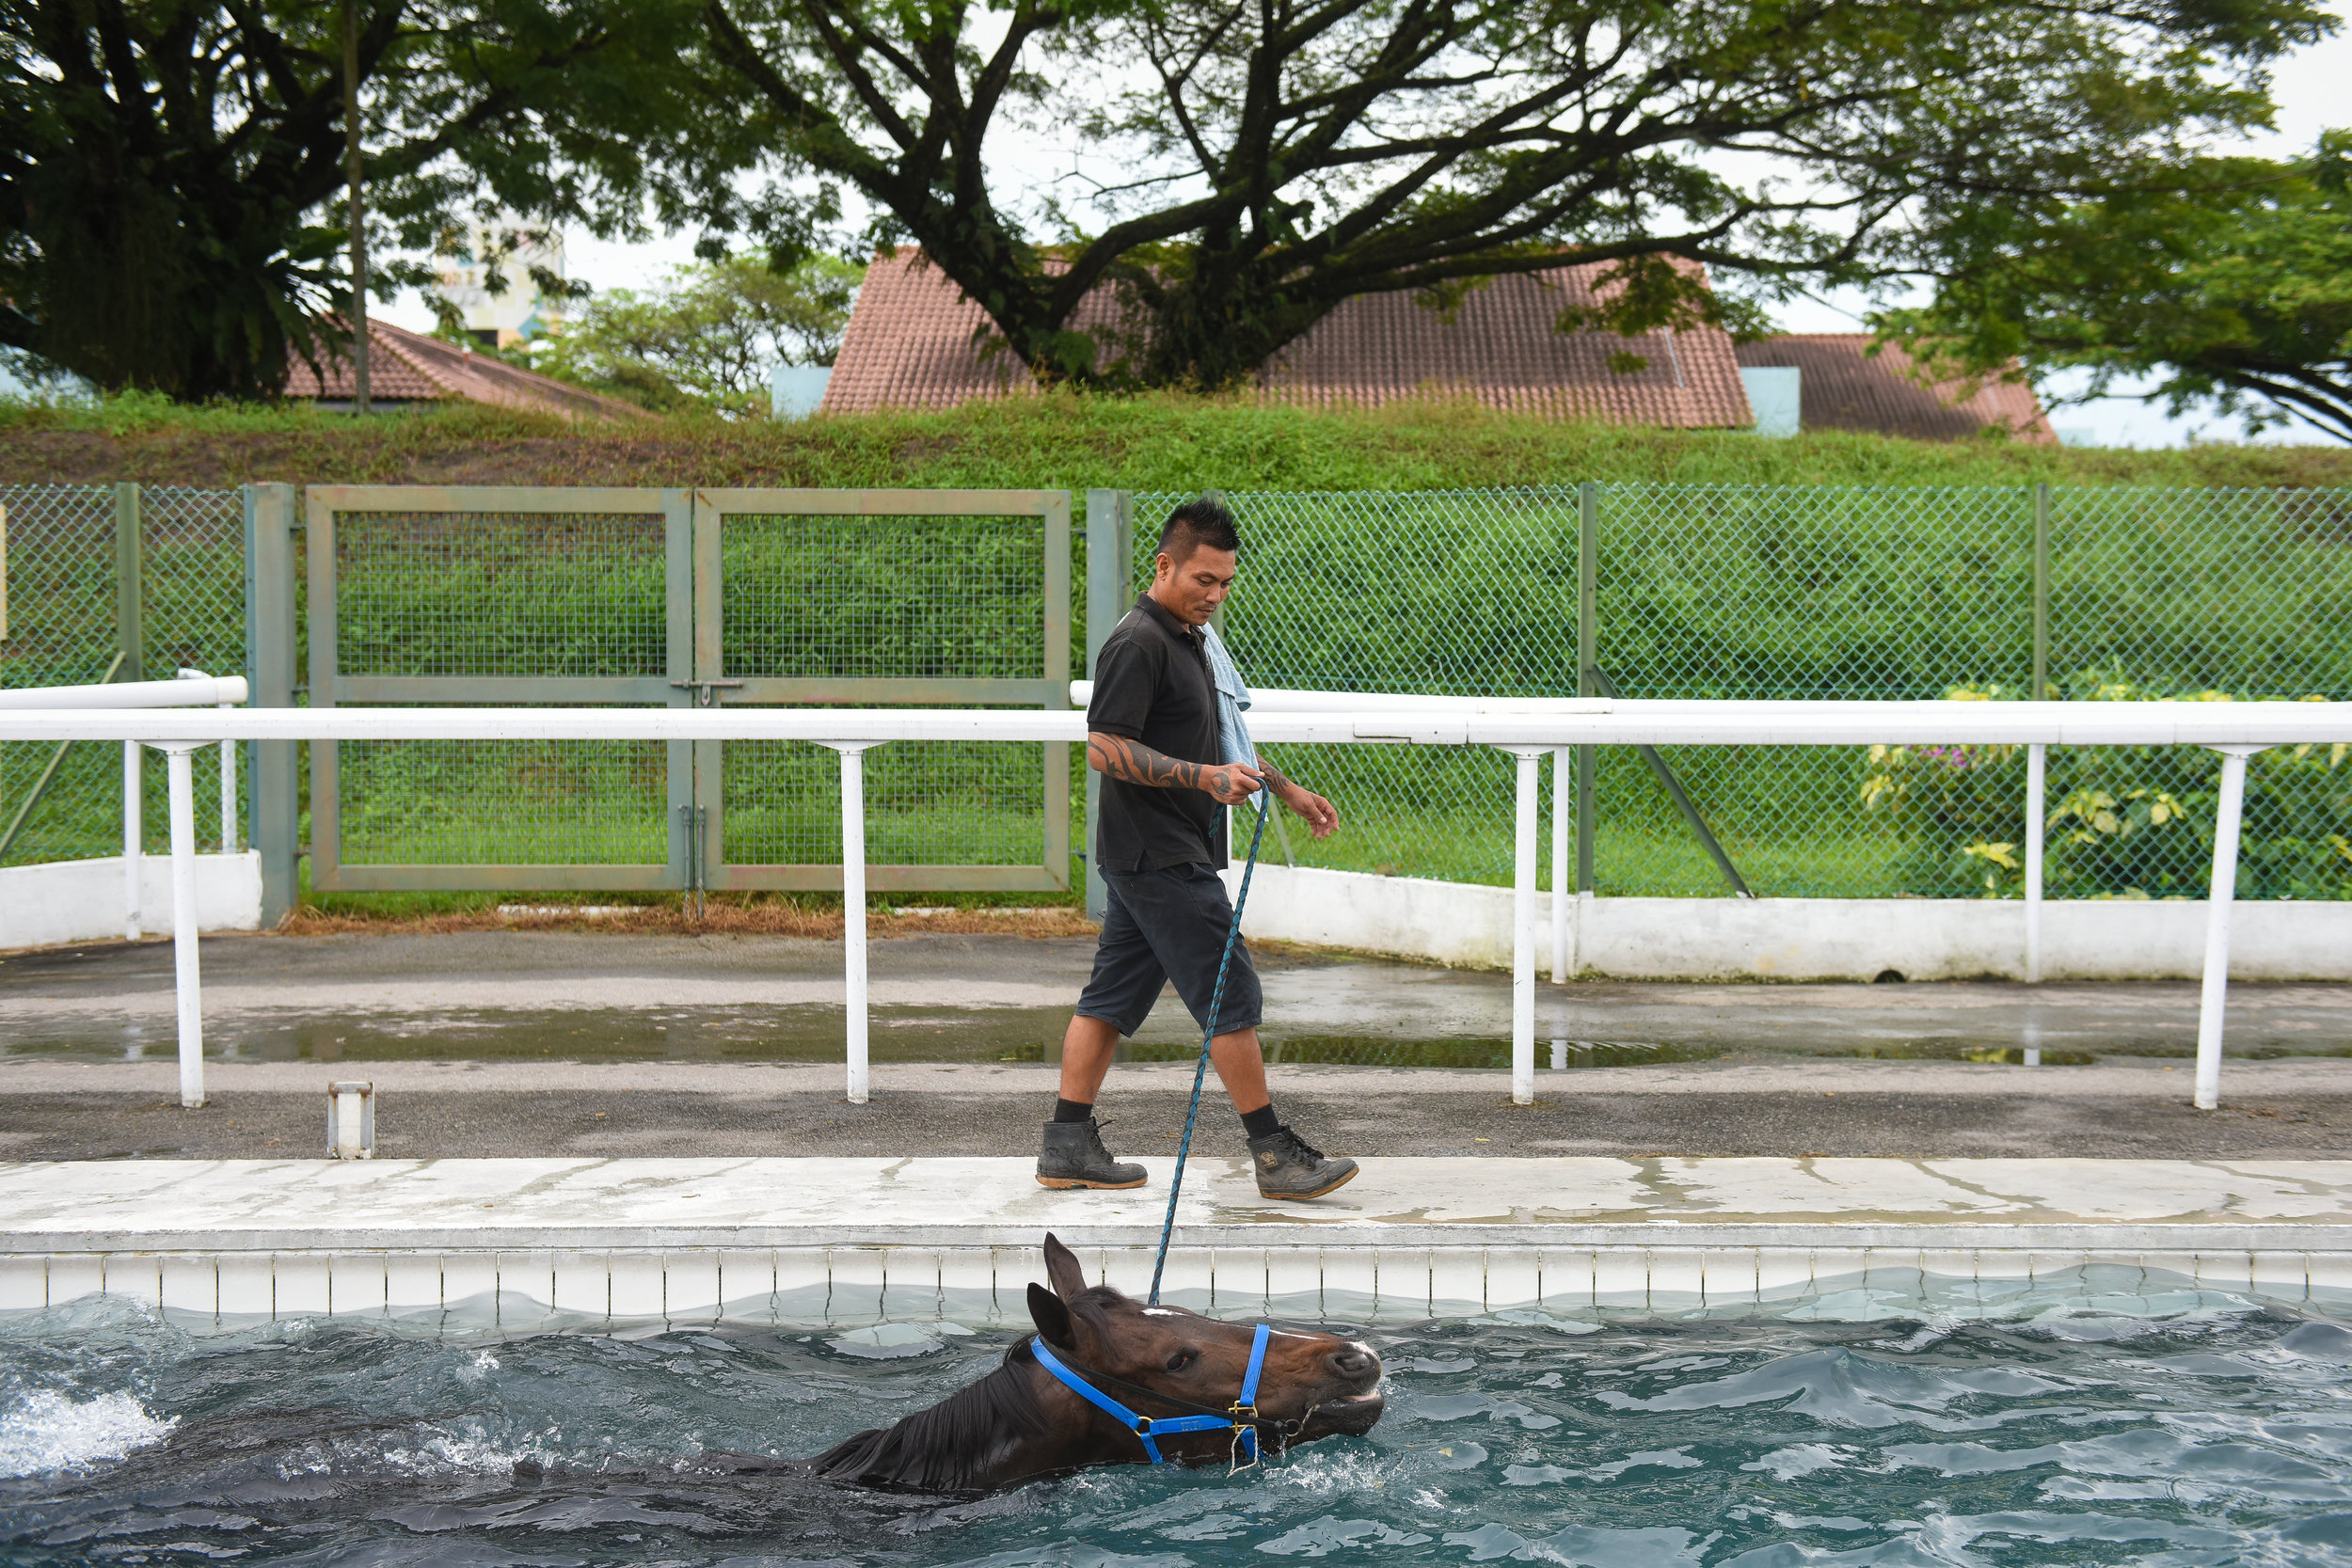 Mr Sulaiman Saib, 43, a syce, taking three-year-old racehorse Winning Tango for a swim. Syces are responsible for grooming the animals and taking them out for exercise. Racehorses go for swims up to four times a week. Members of the public who sign up for the stable tours can watch this activity, which helps the horses build stamina and strength.